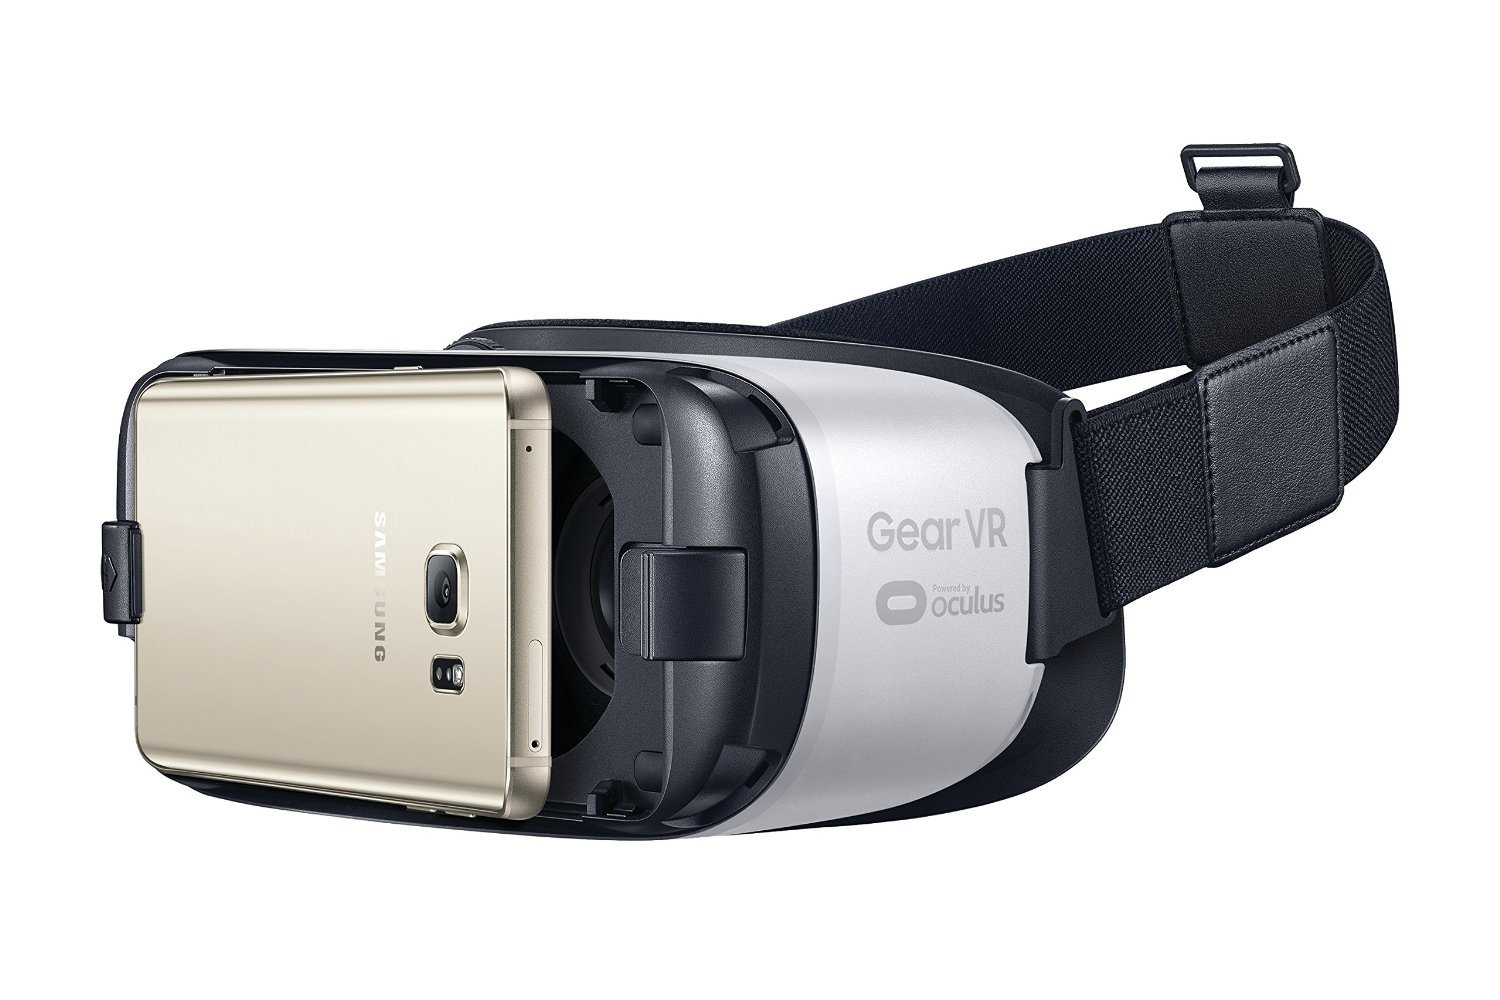 Samsung Gear VR Virtual Reality Headset Black Lightweight Easy to Use Wide FOV by Samsung (Image #4)